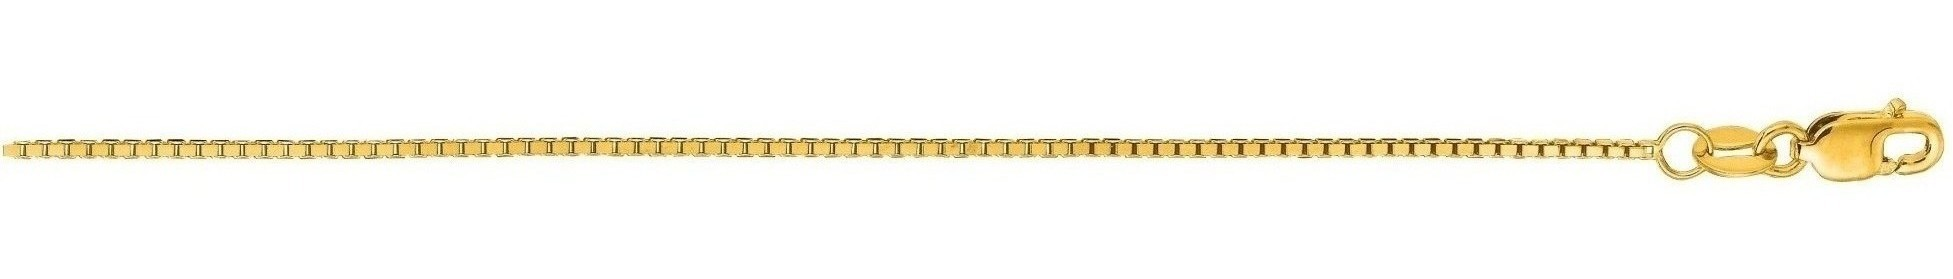 "24"" 14K Yellow Gold 1.0mm (0.04"") Polished Octagonal Box Chain w/ Lobster Clasp"